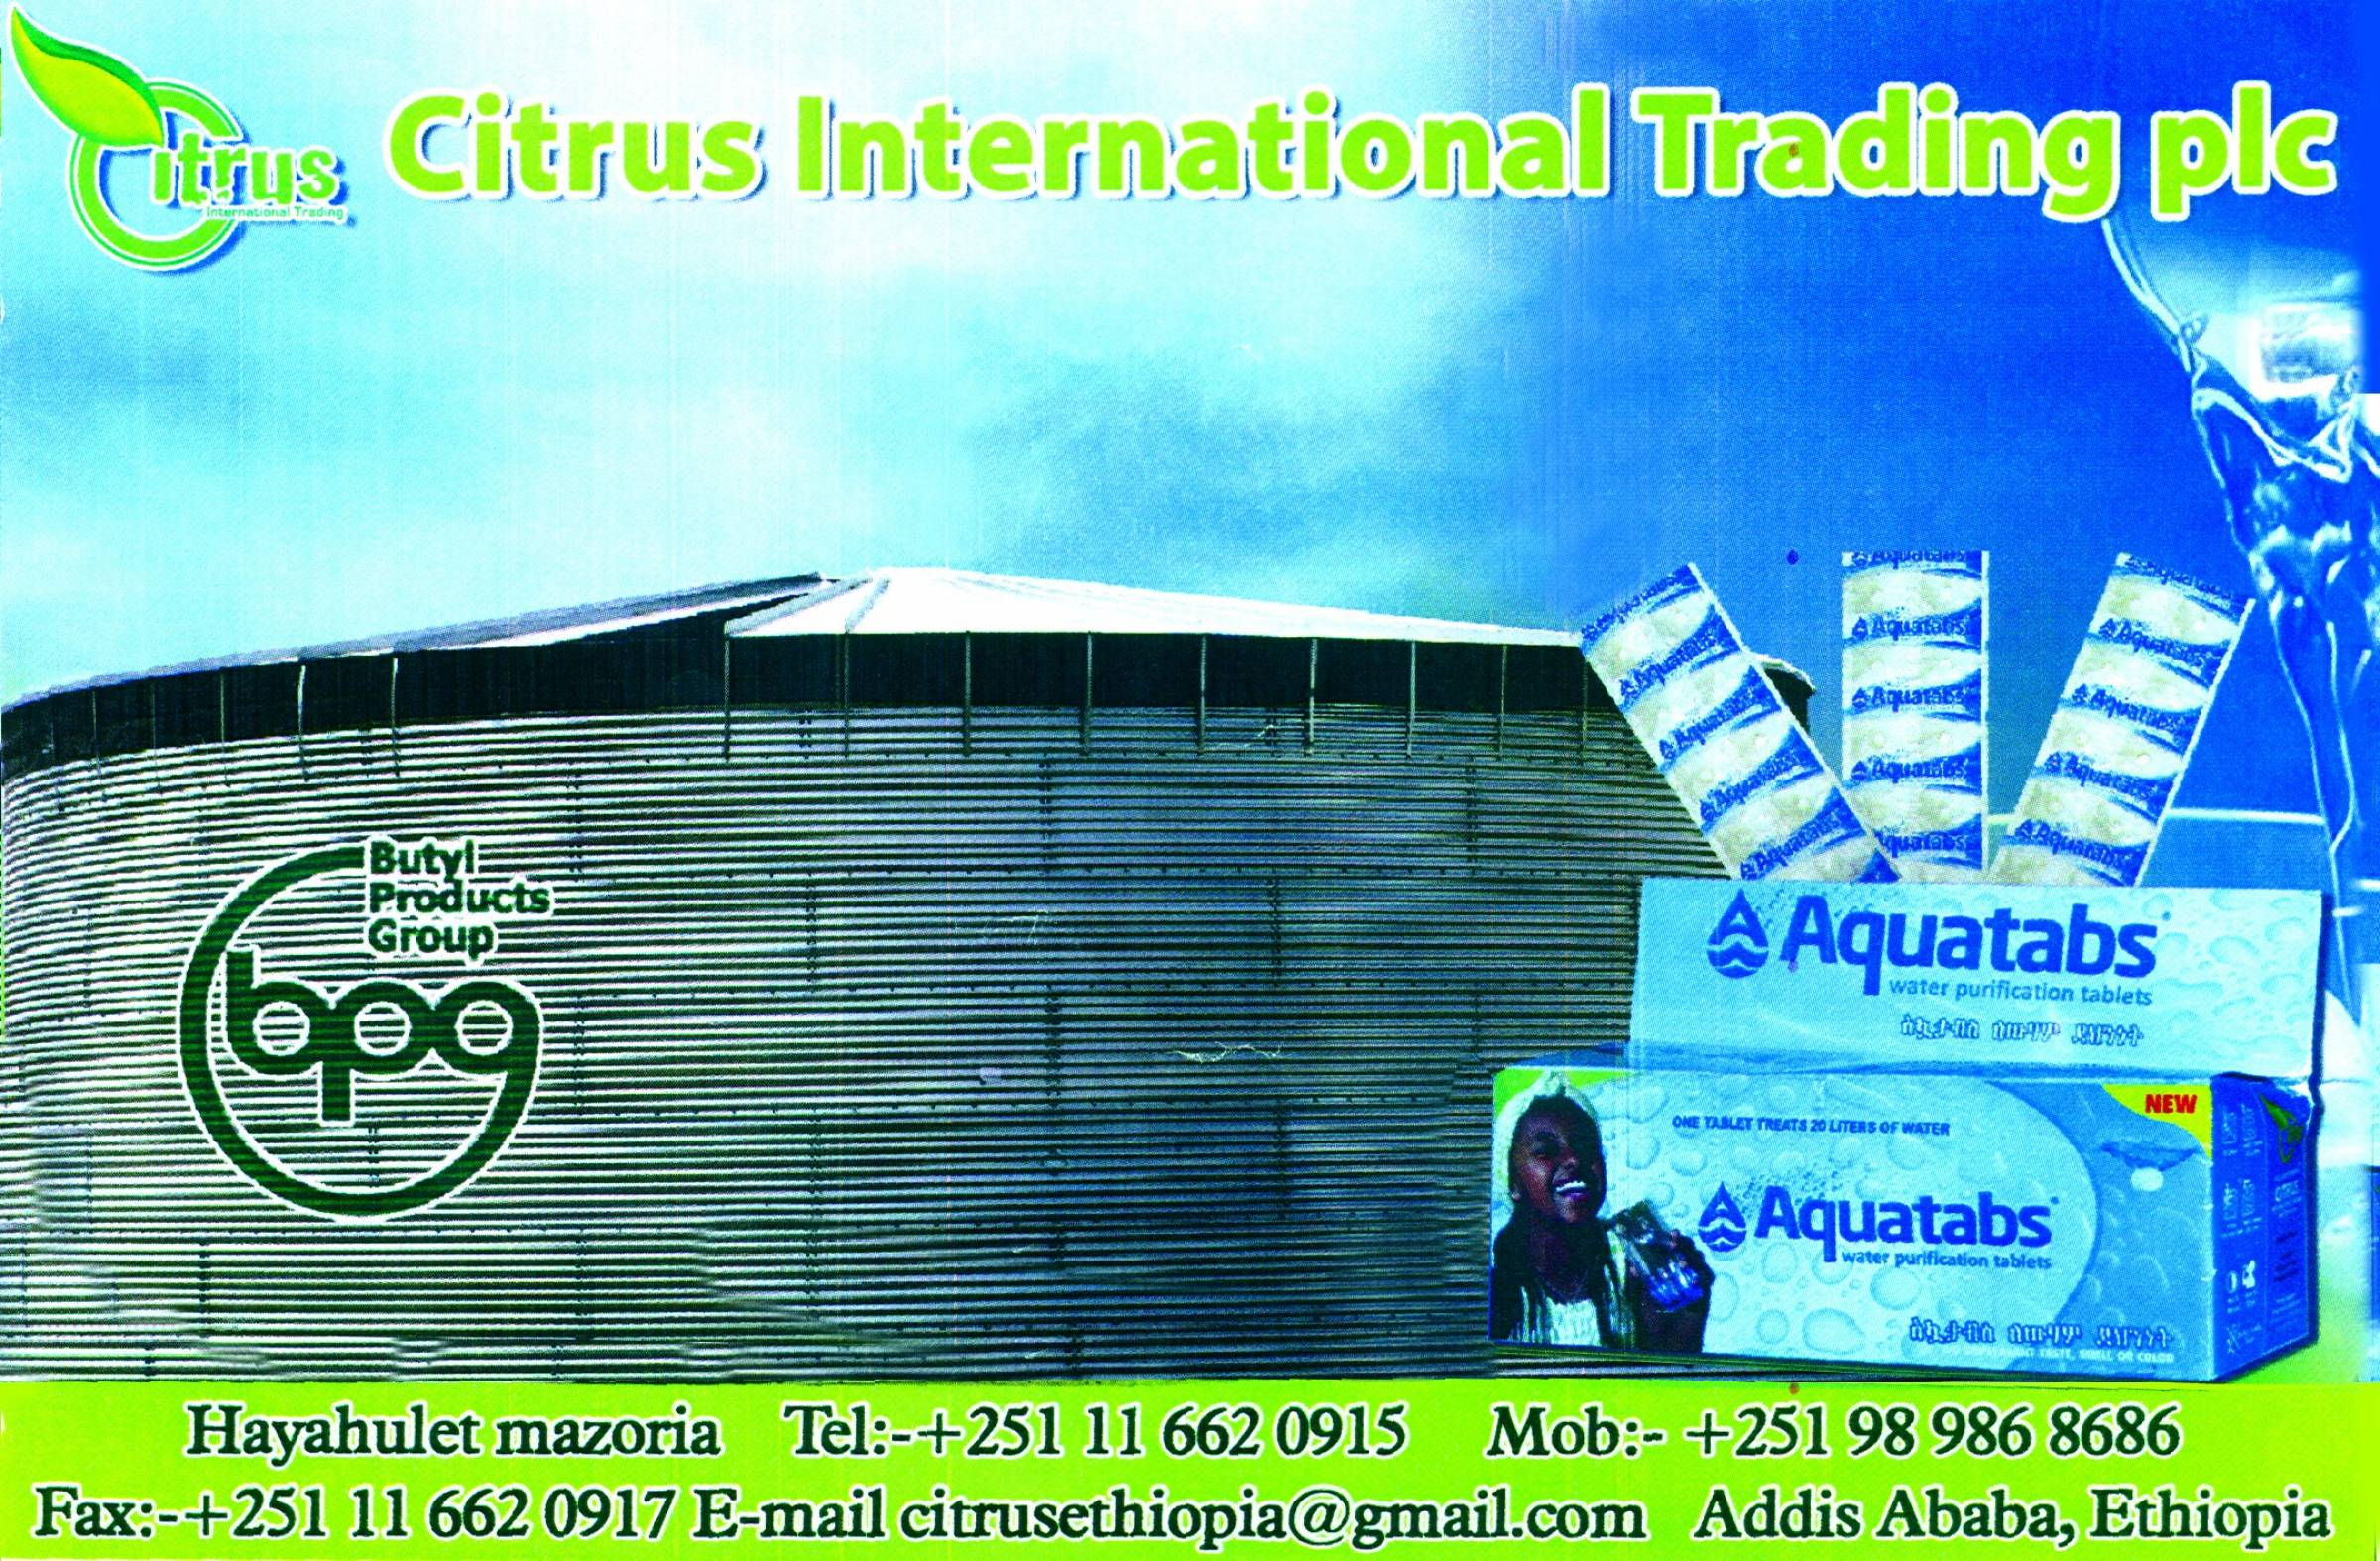 Citrus International Trading